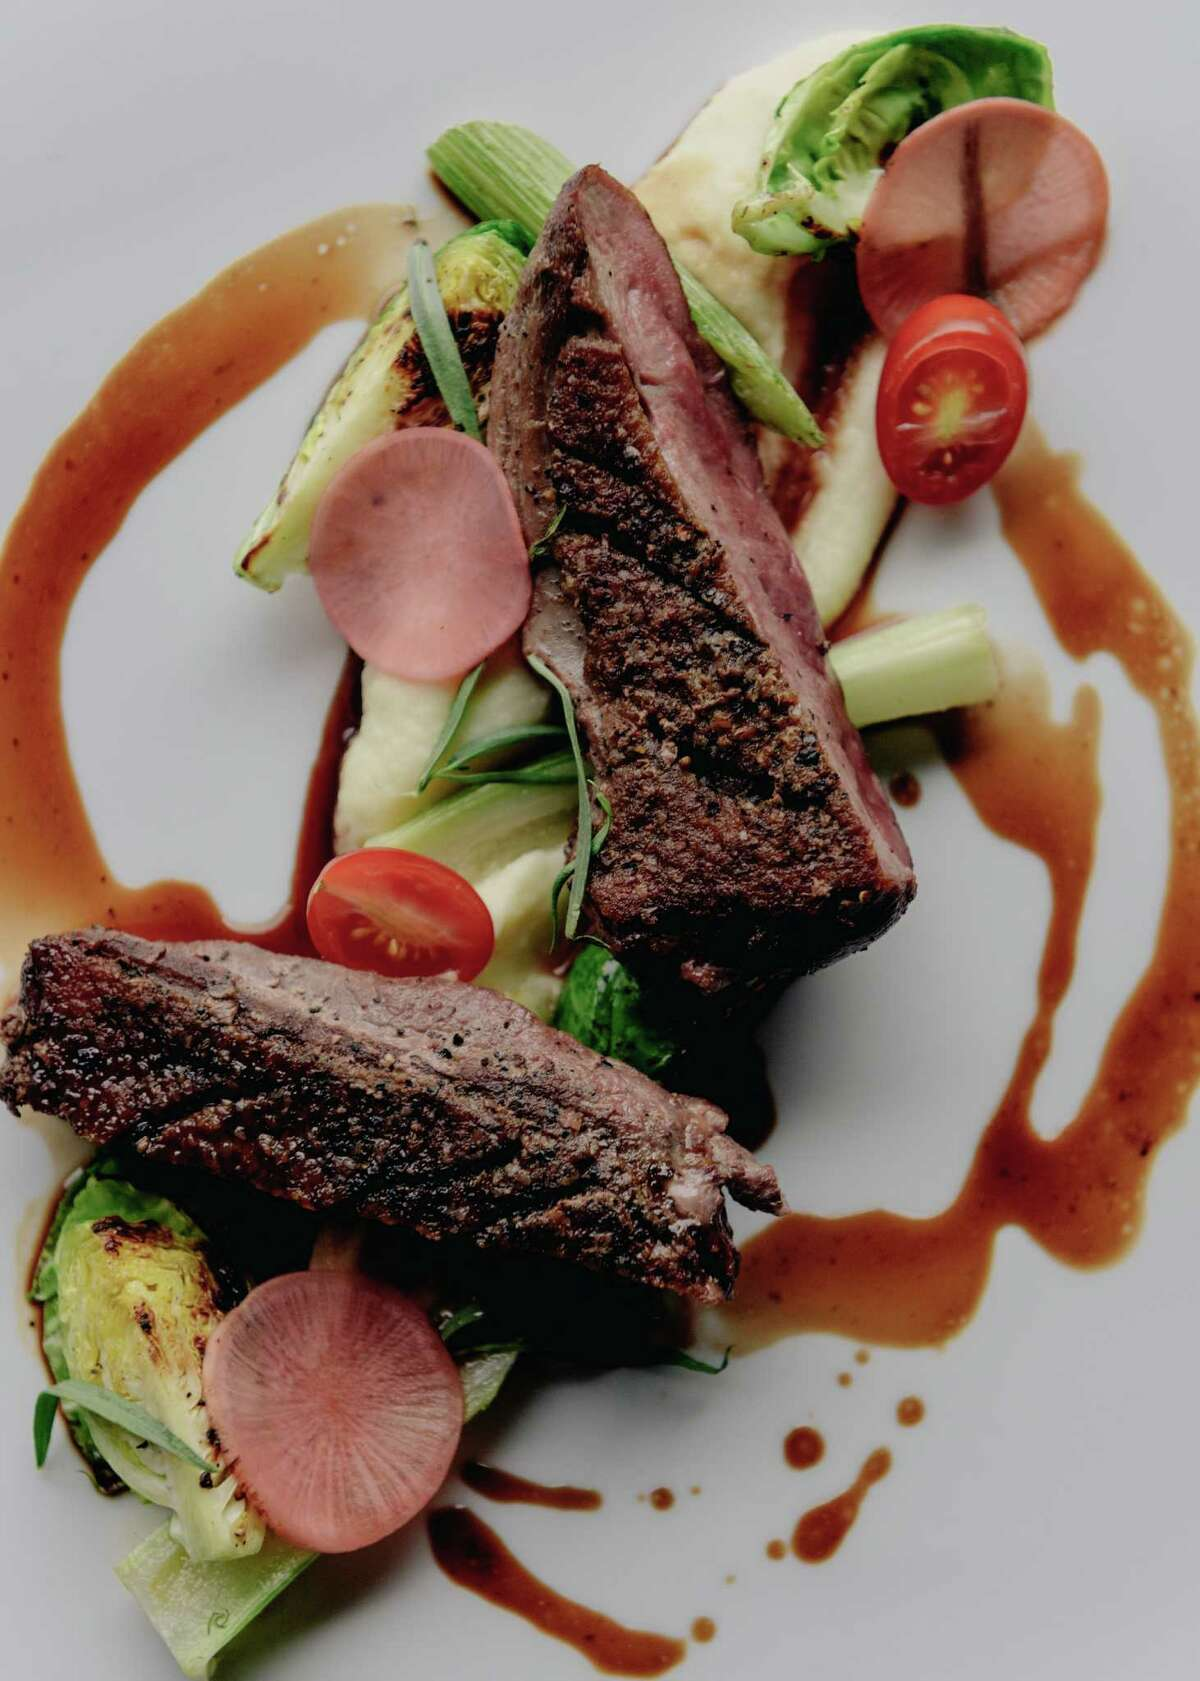 Seared Moscovy duck breast, parsnips, seasonal vegetables and demi-glace at the Durham House, 1200 Durham. The restaurant has a new executive chef, Mike McElroy, who has updated the menu.